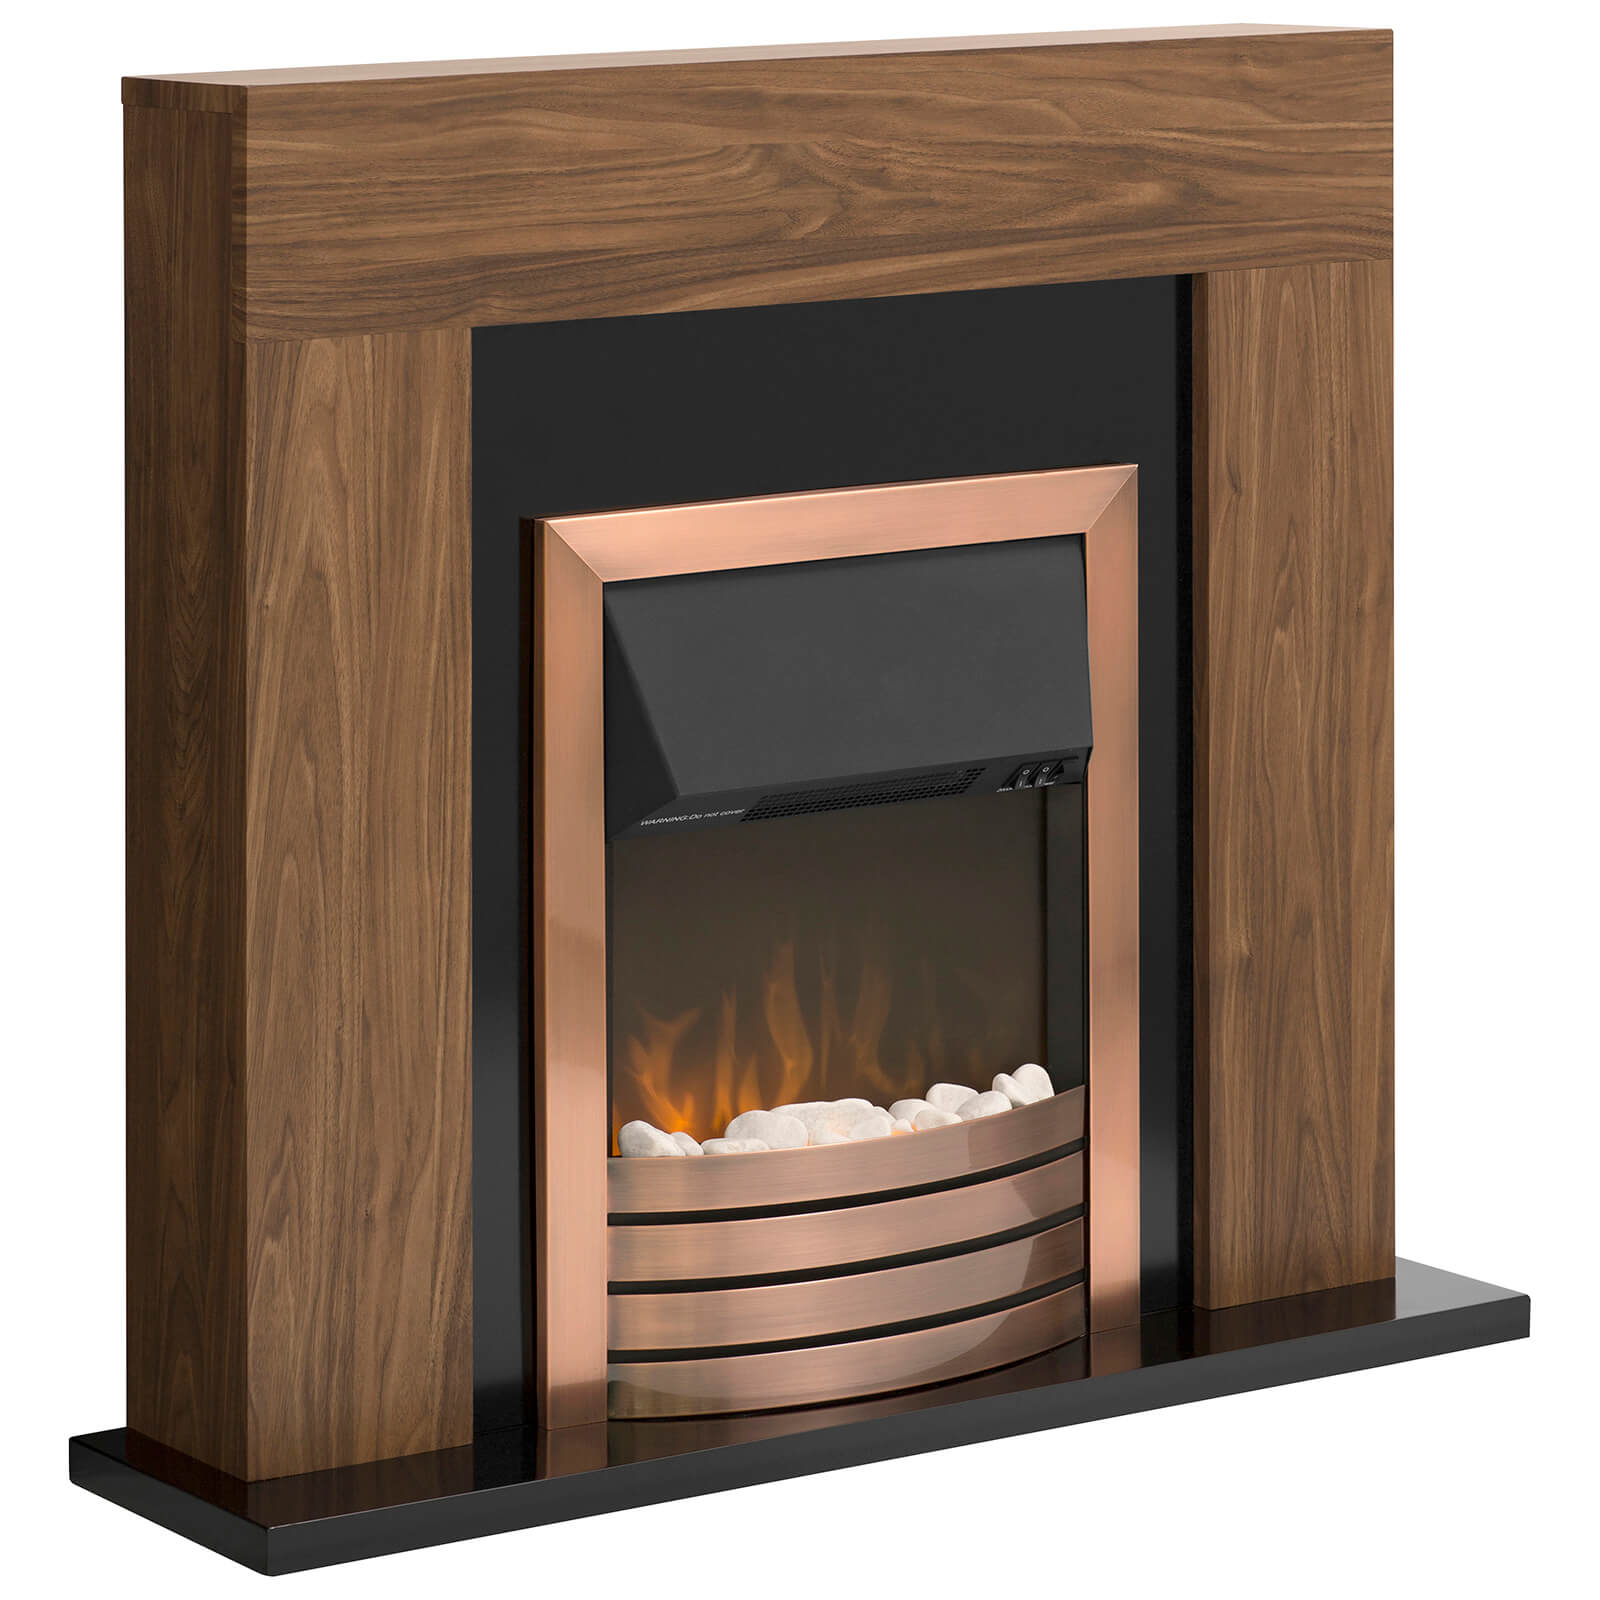 Warmlite WL45025 Sailsbury Fireplace Suite - Dark Wood